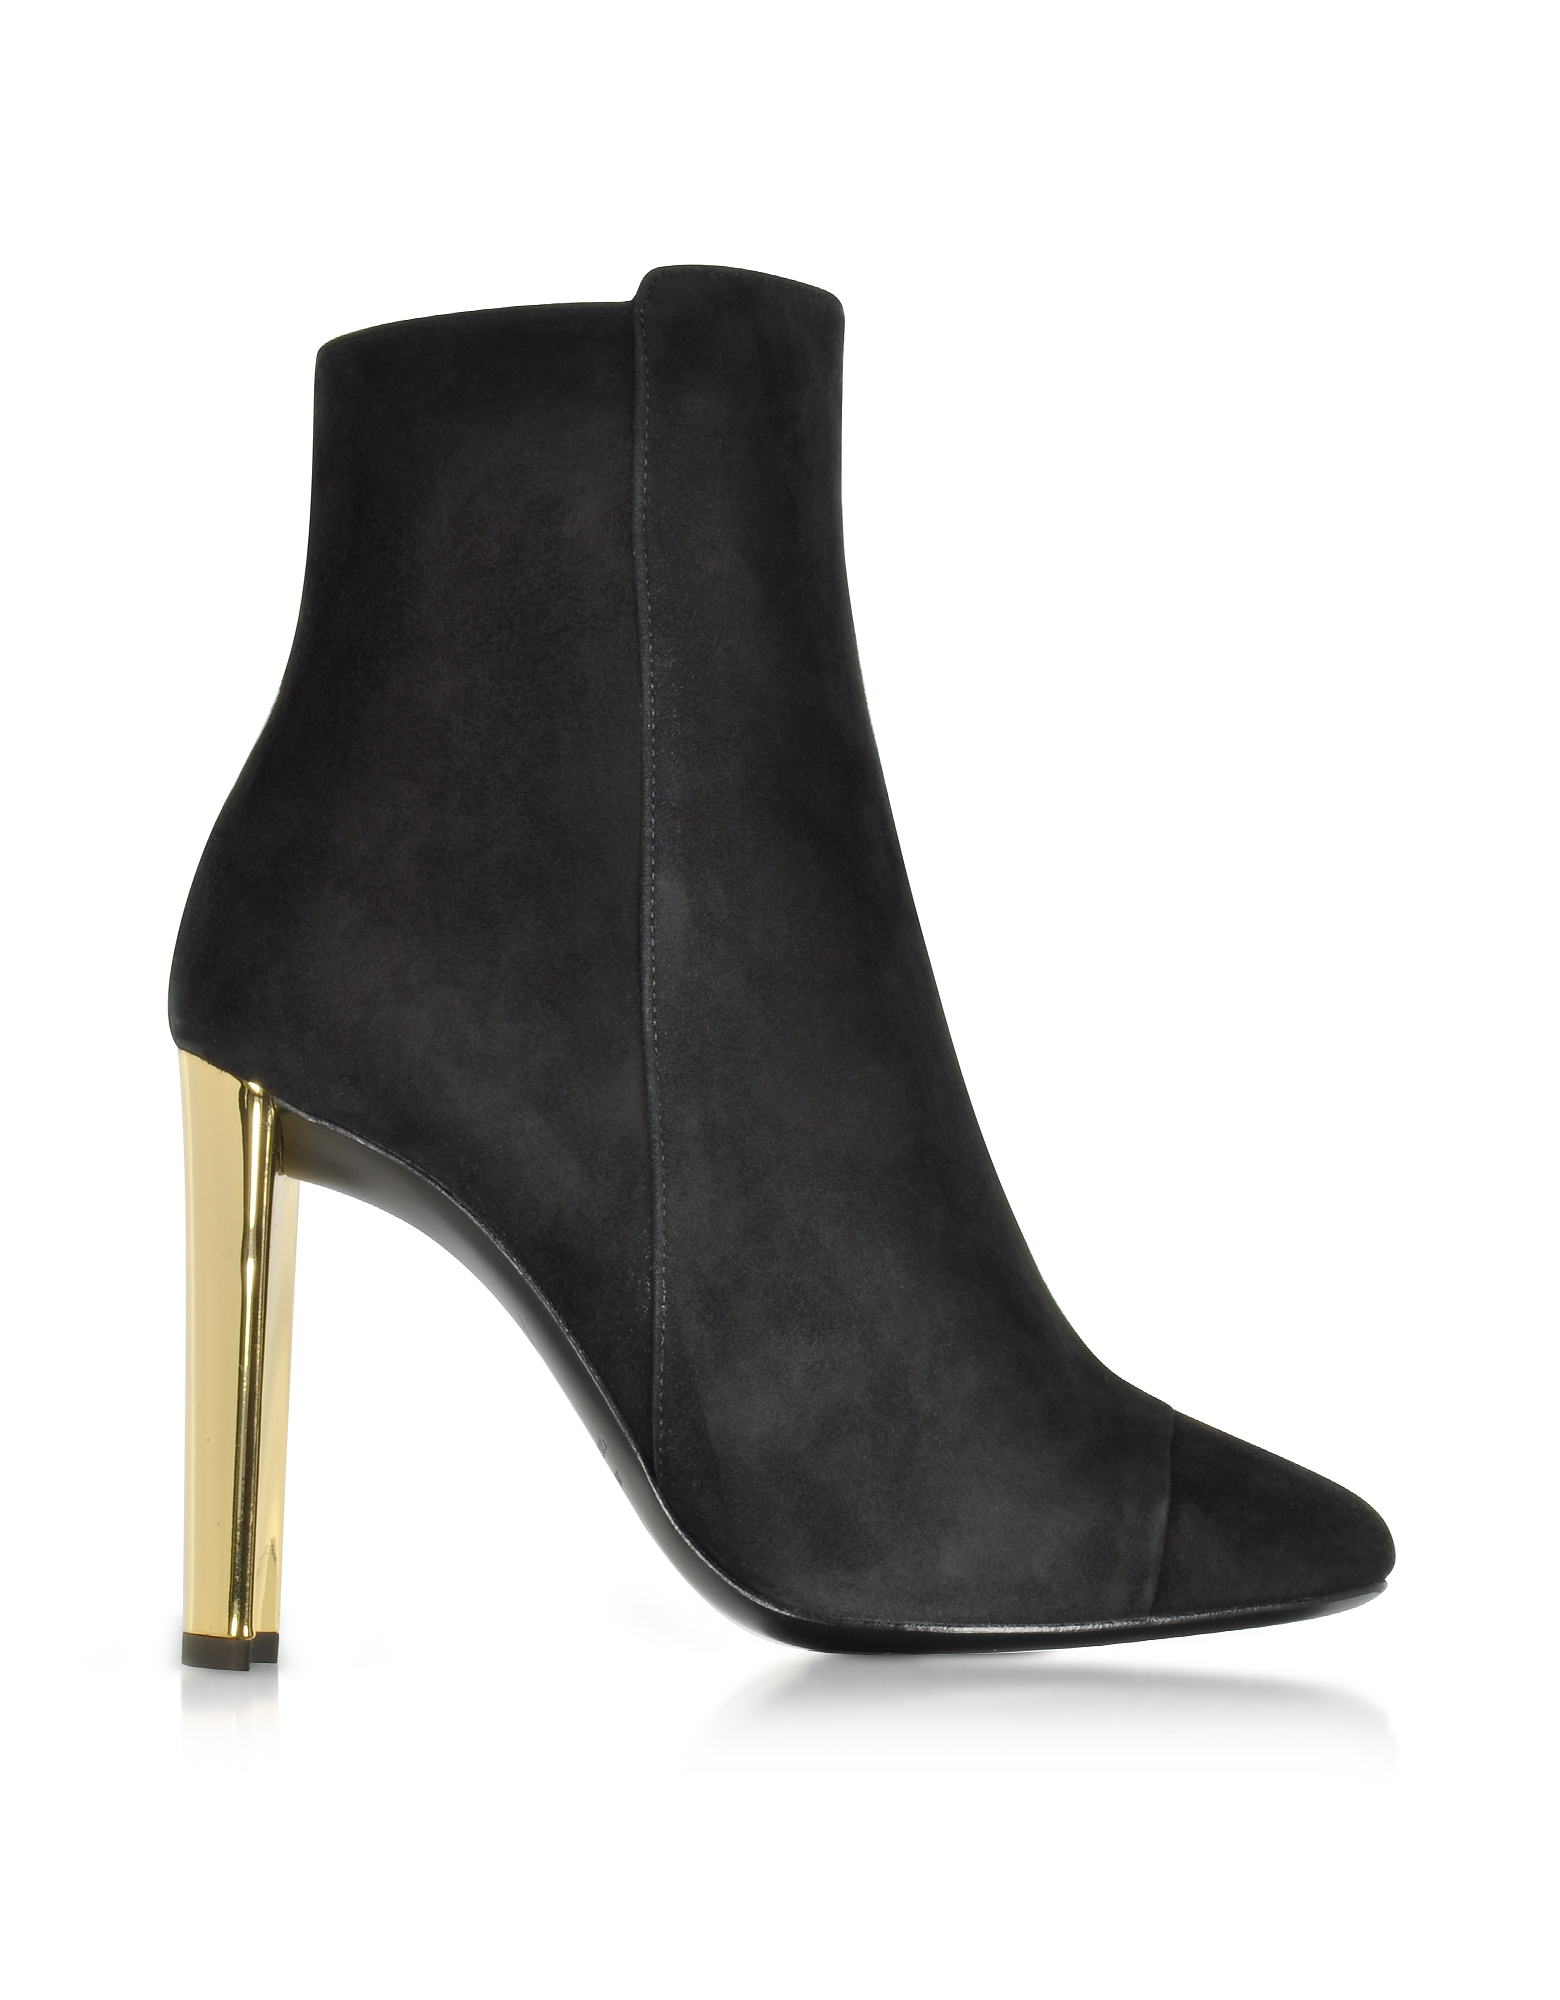 Giuseppe Zanotti Shoes, Ruggente Black Suede Bootie w/Golden Heel